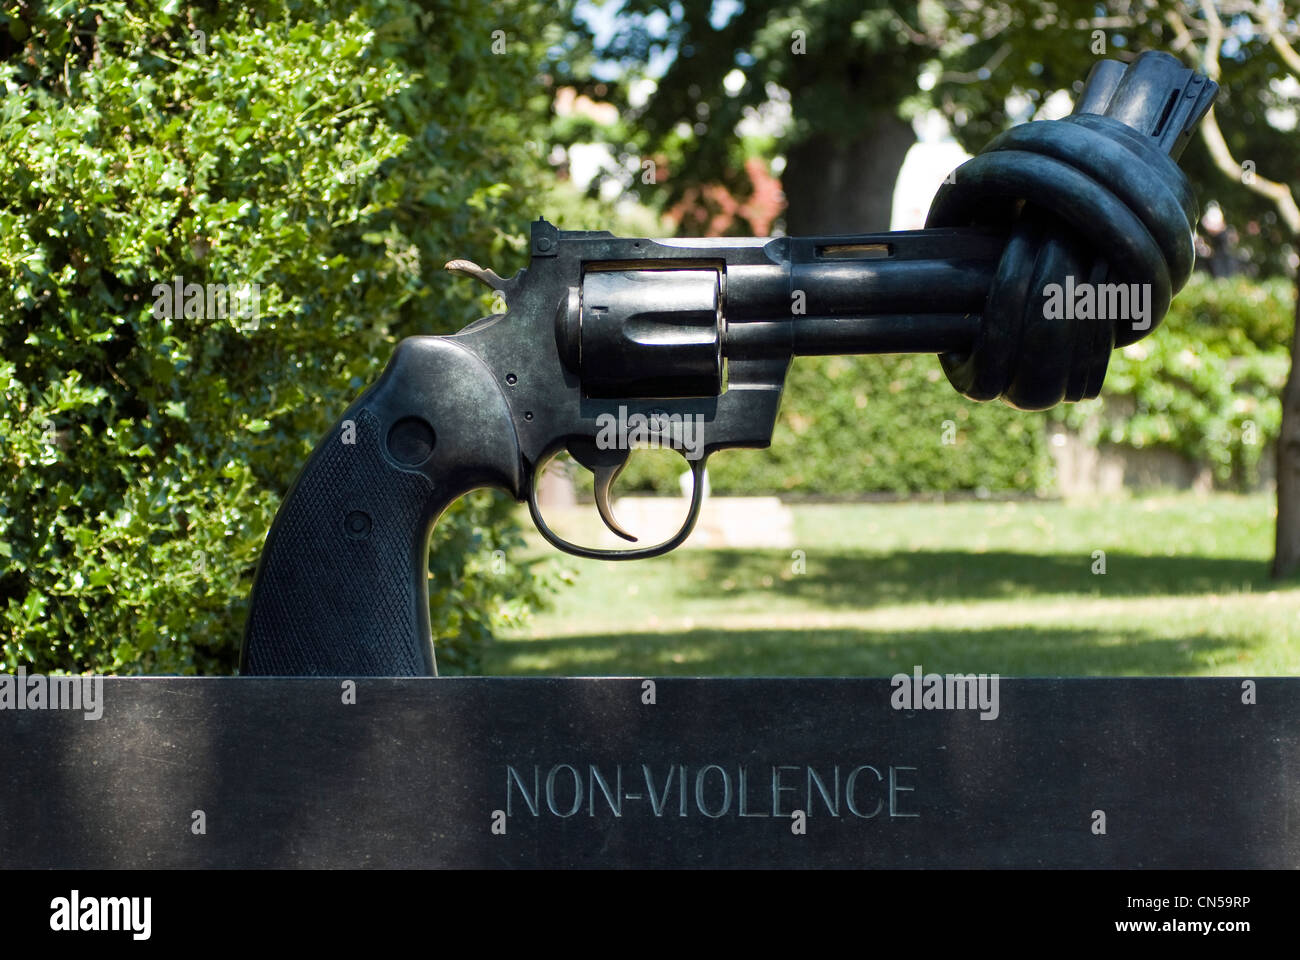 Switzerland, Canton of Vaud, Lausanne, Olympic museum in Lausanne, Carl Fredrik Reutersward sculpture entitled Nonviolence - Stock Image